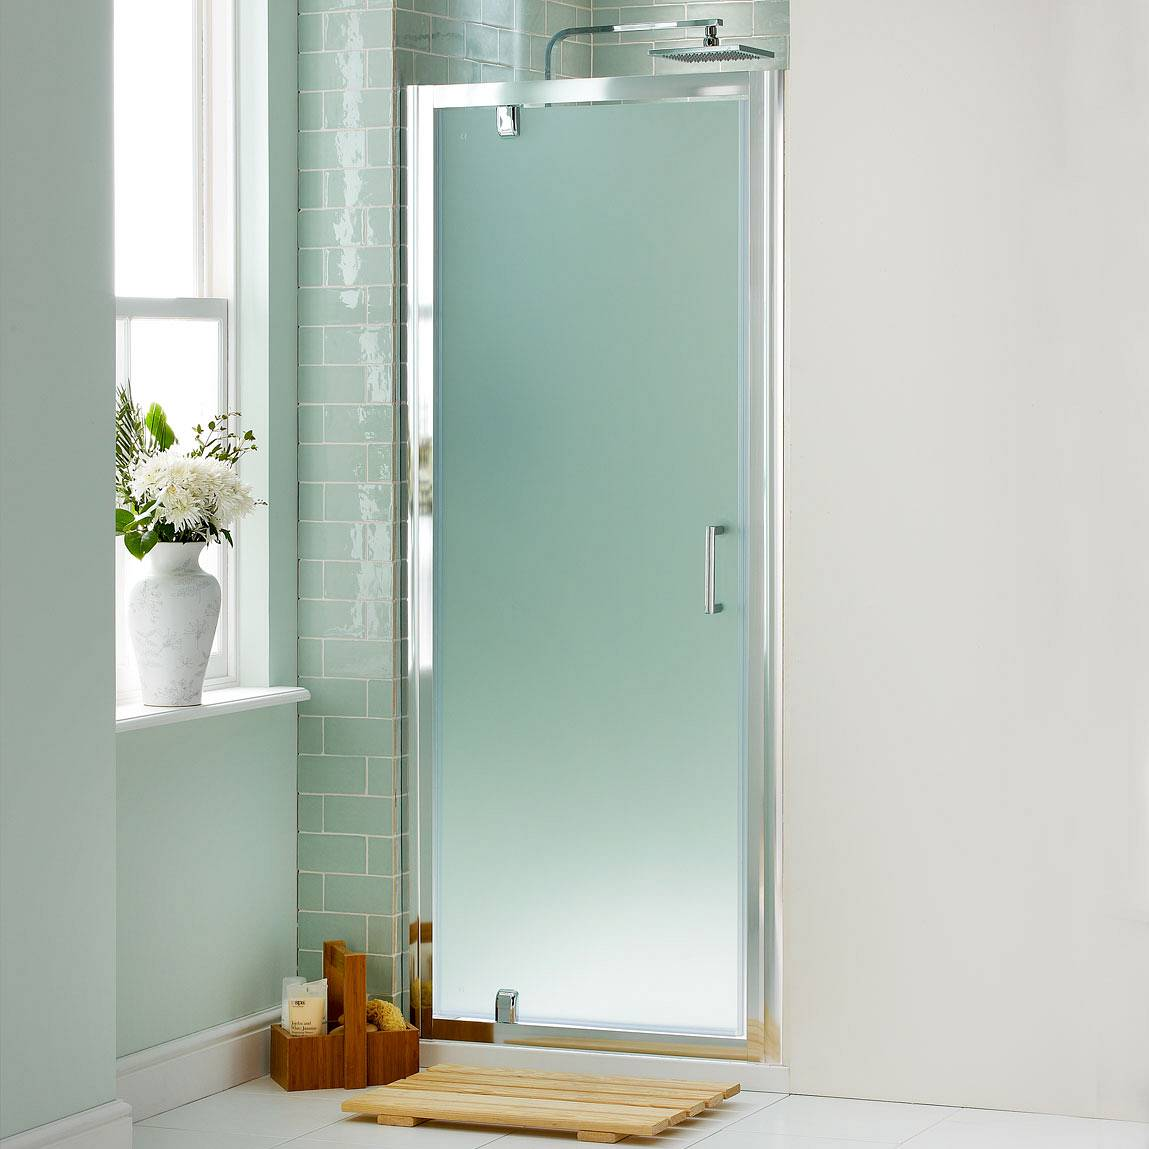 Frosted Glass Interior Doors For Bathrooms Are A Common Solution In